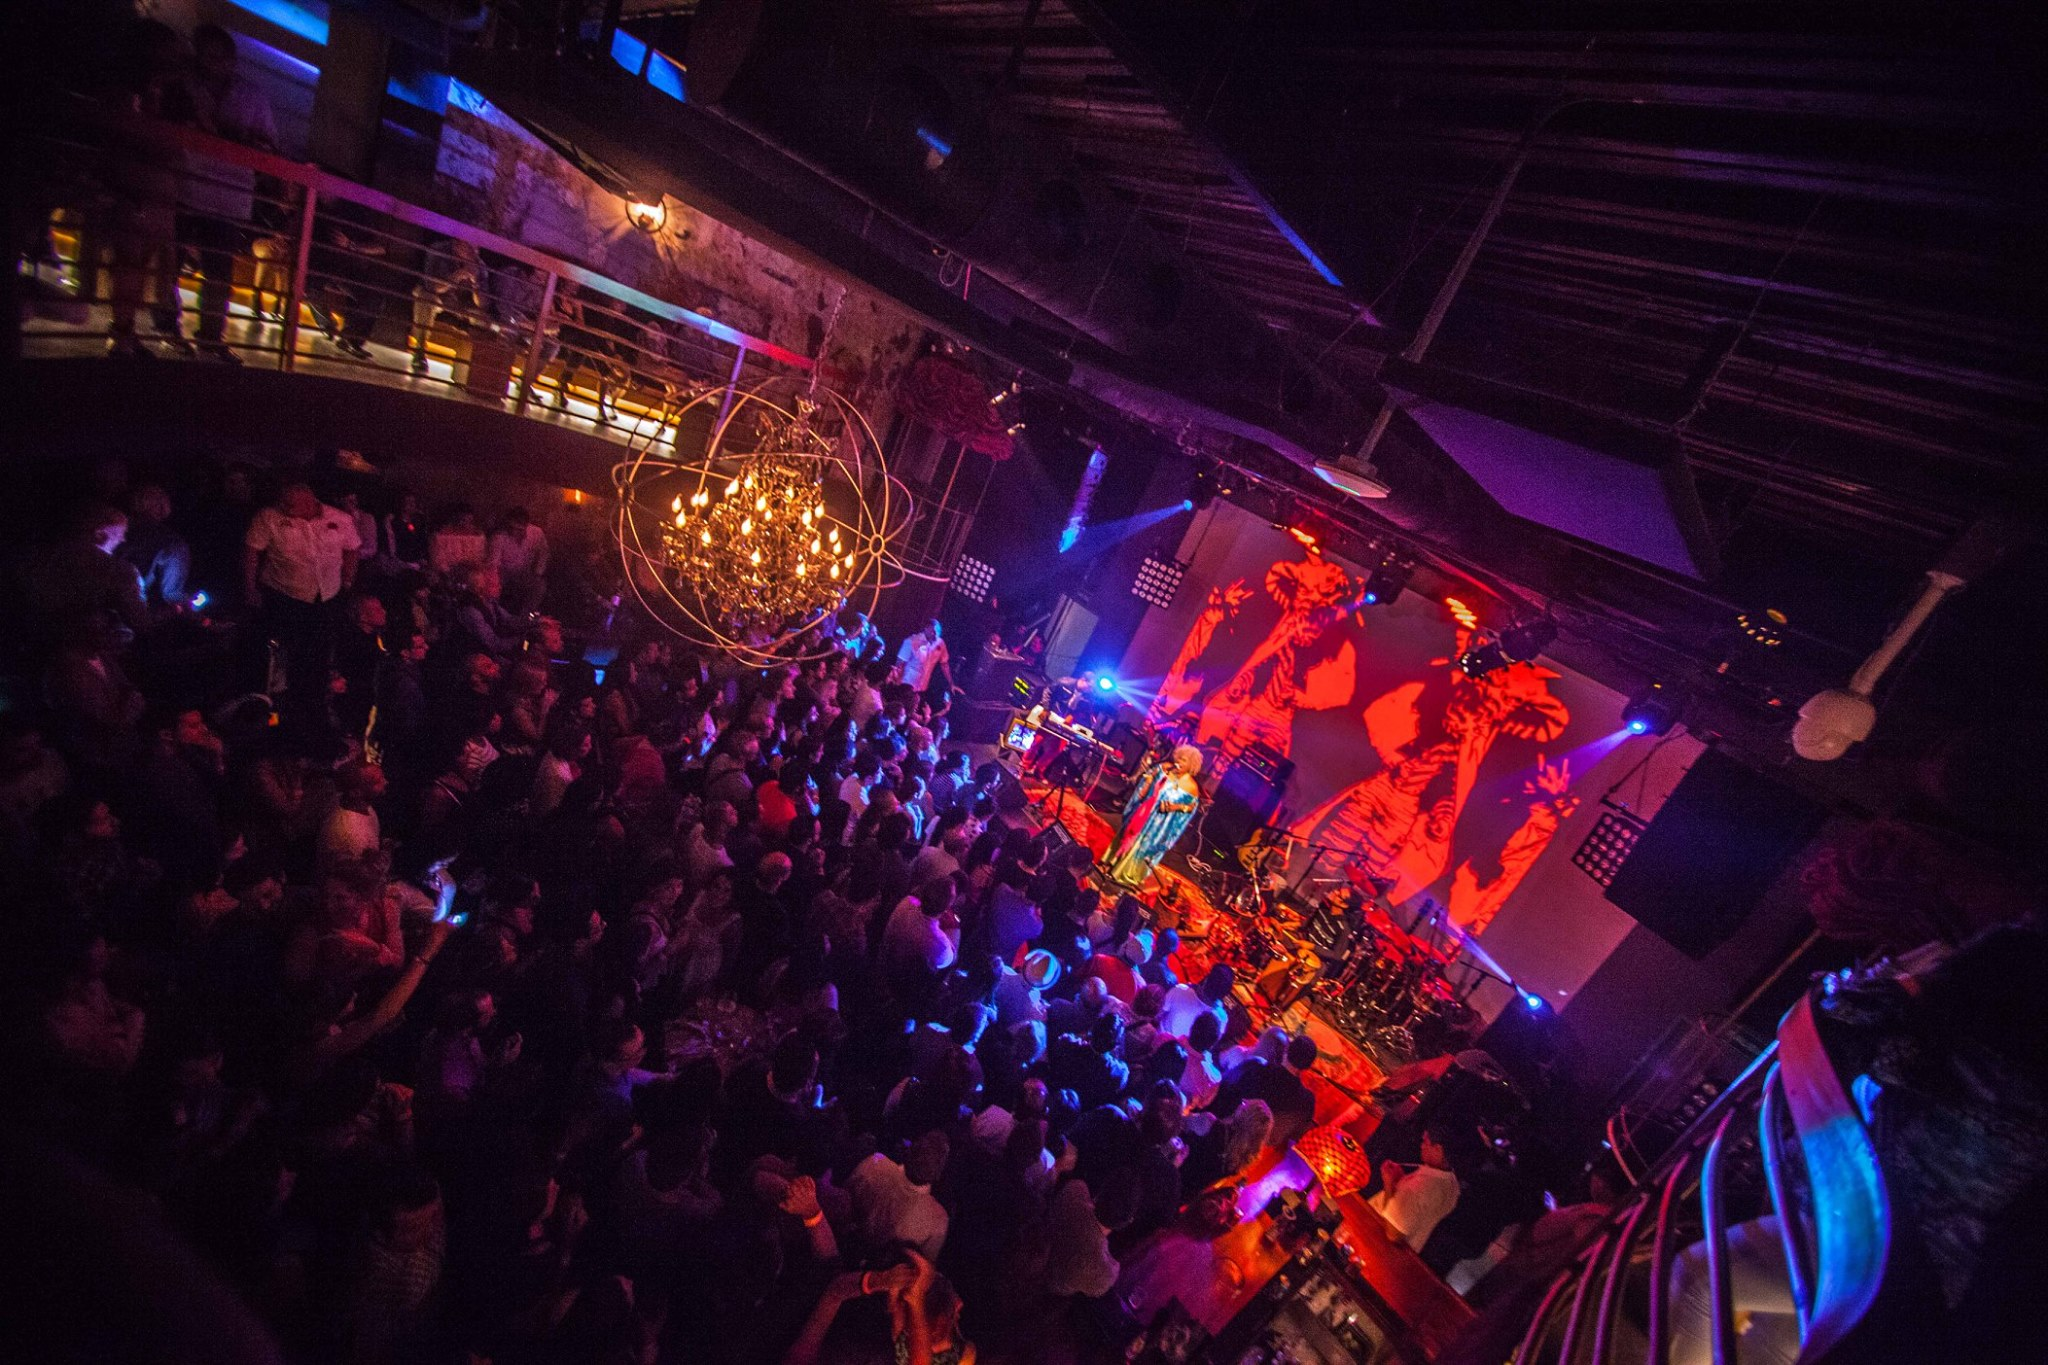 teatro amador night club main area with stage